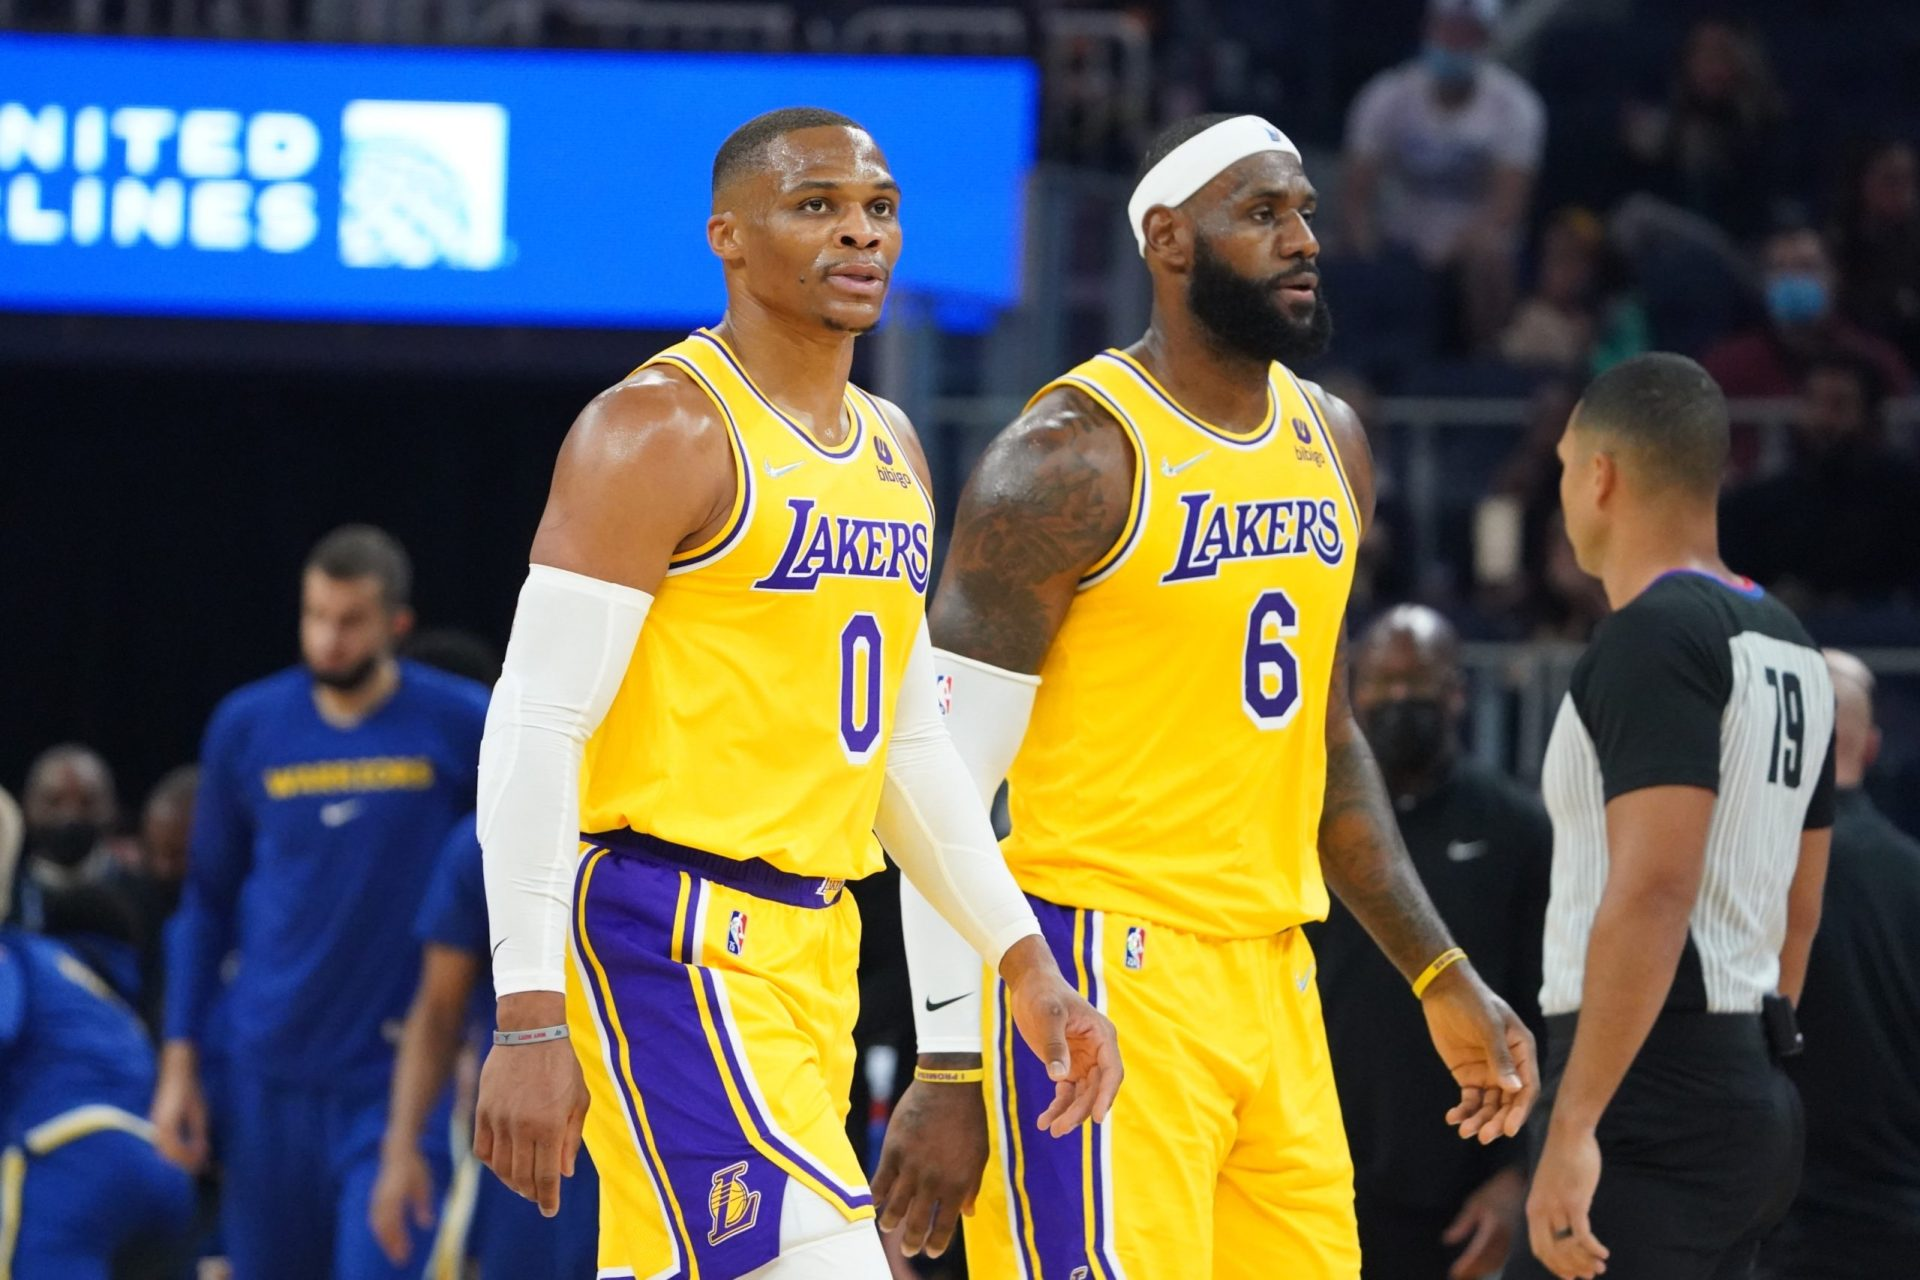 LeBron James downplays concern over Lakers' 0-5 preseason record - THE SPORTS ROOM